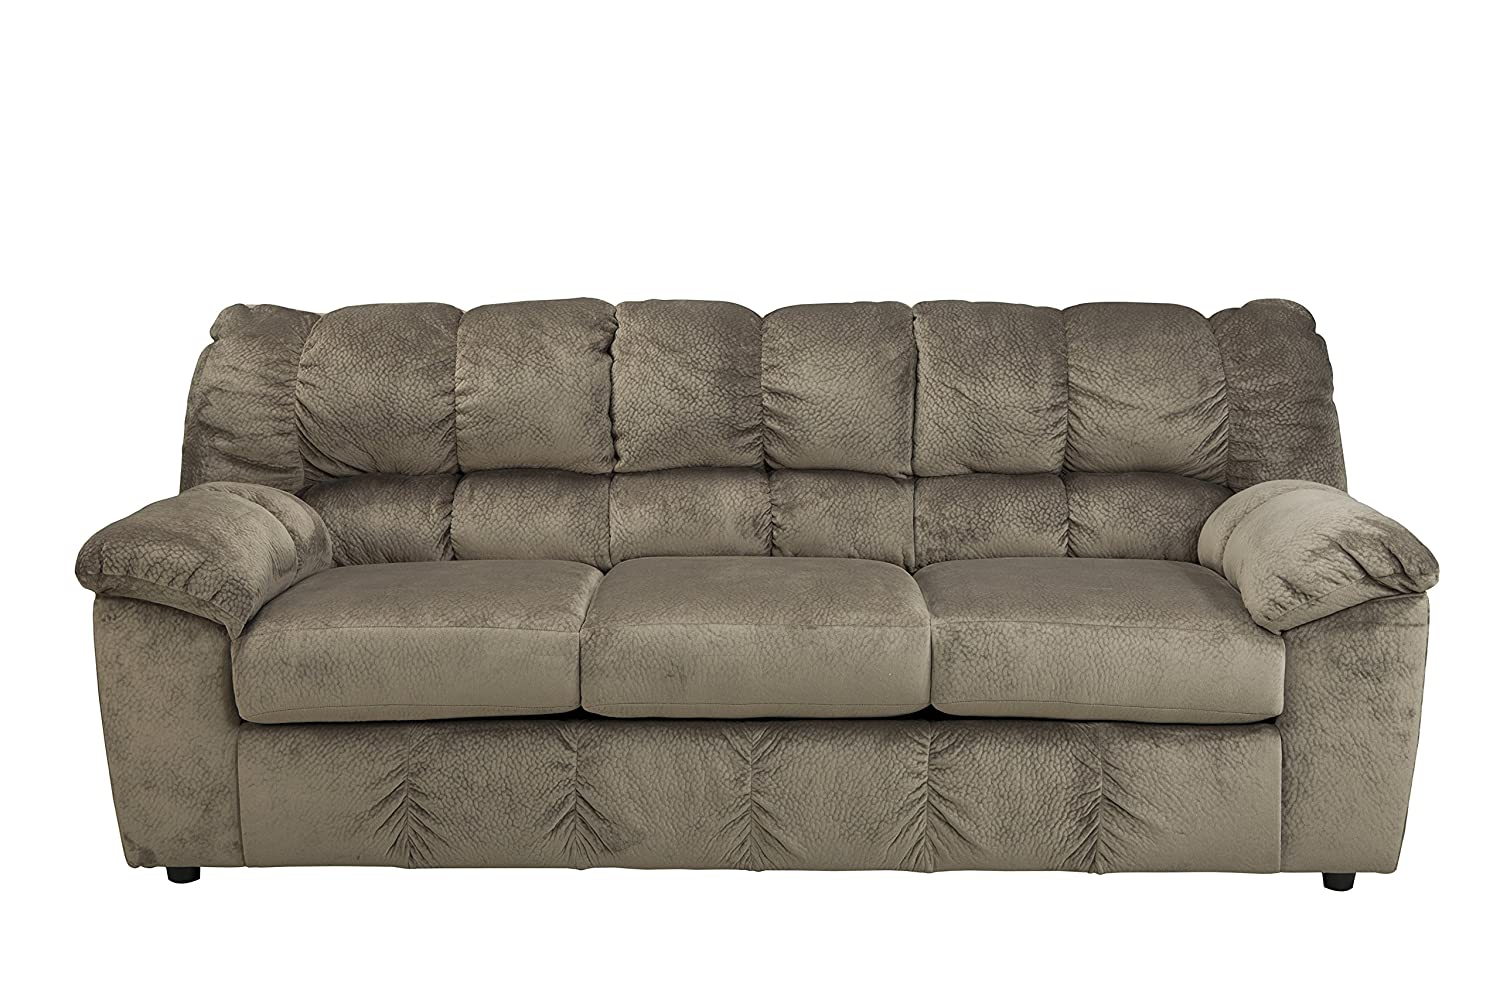 Ashley Furniture Signature Design - Julson Contemporary Sofa - 3 Seats - Puckered Stitching - Dune